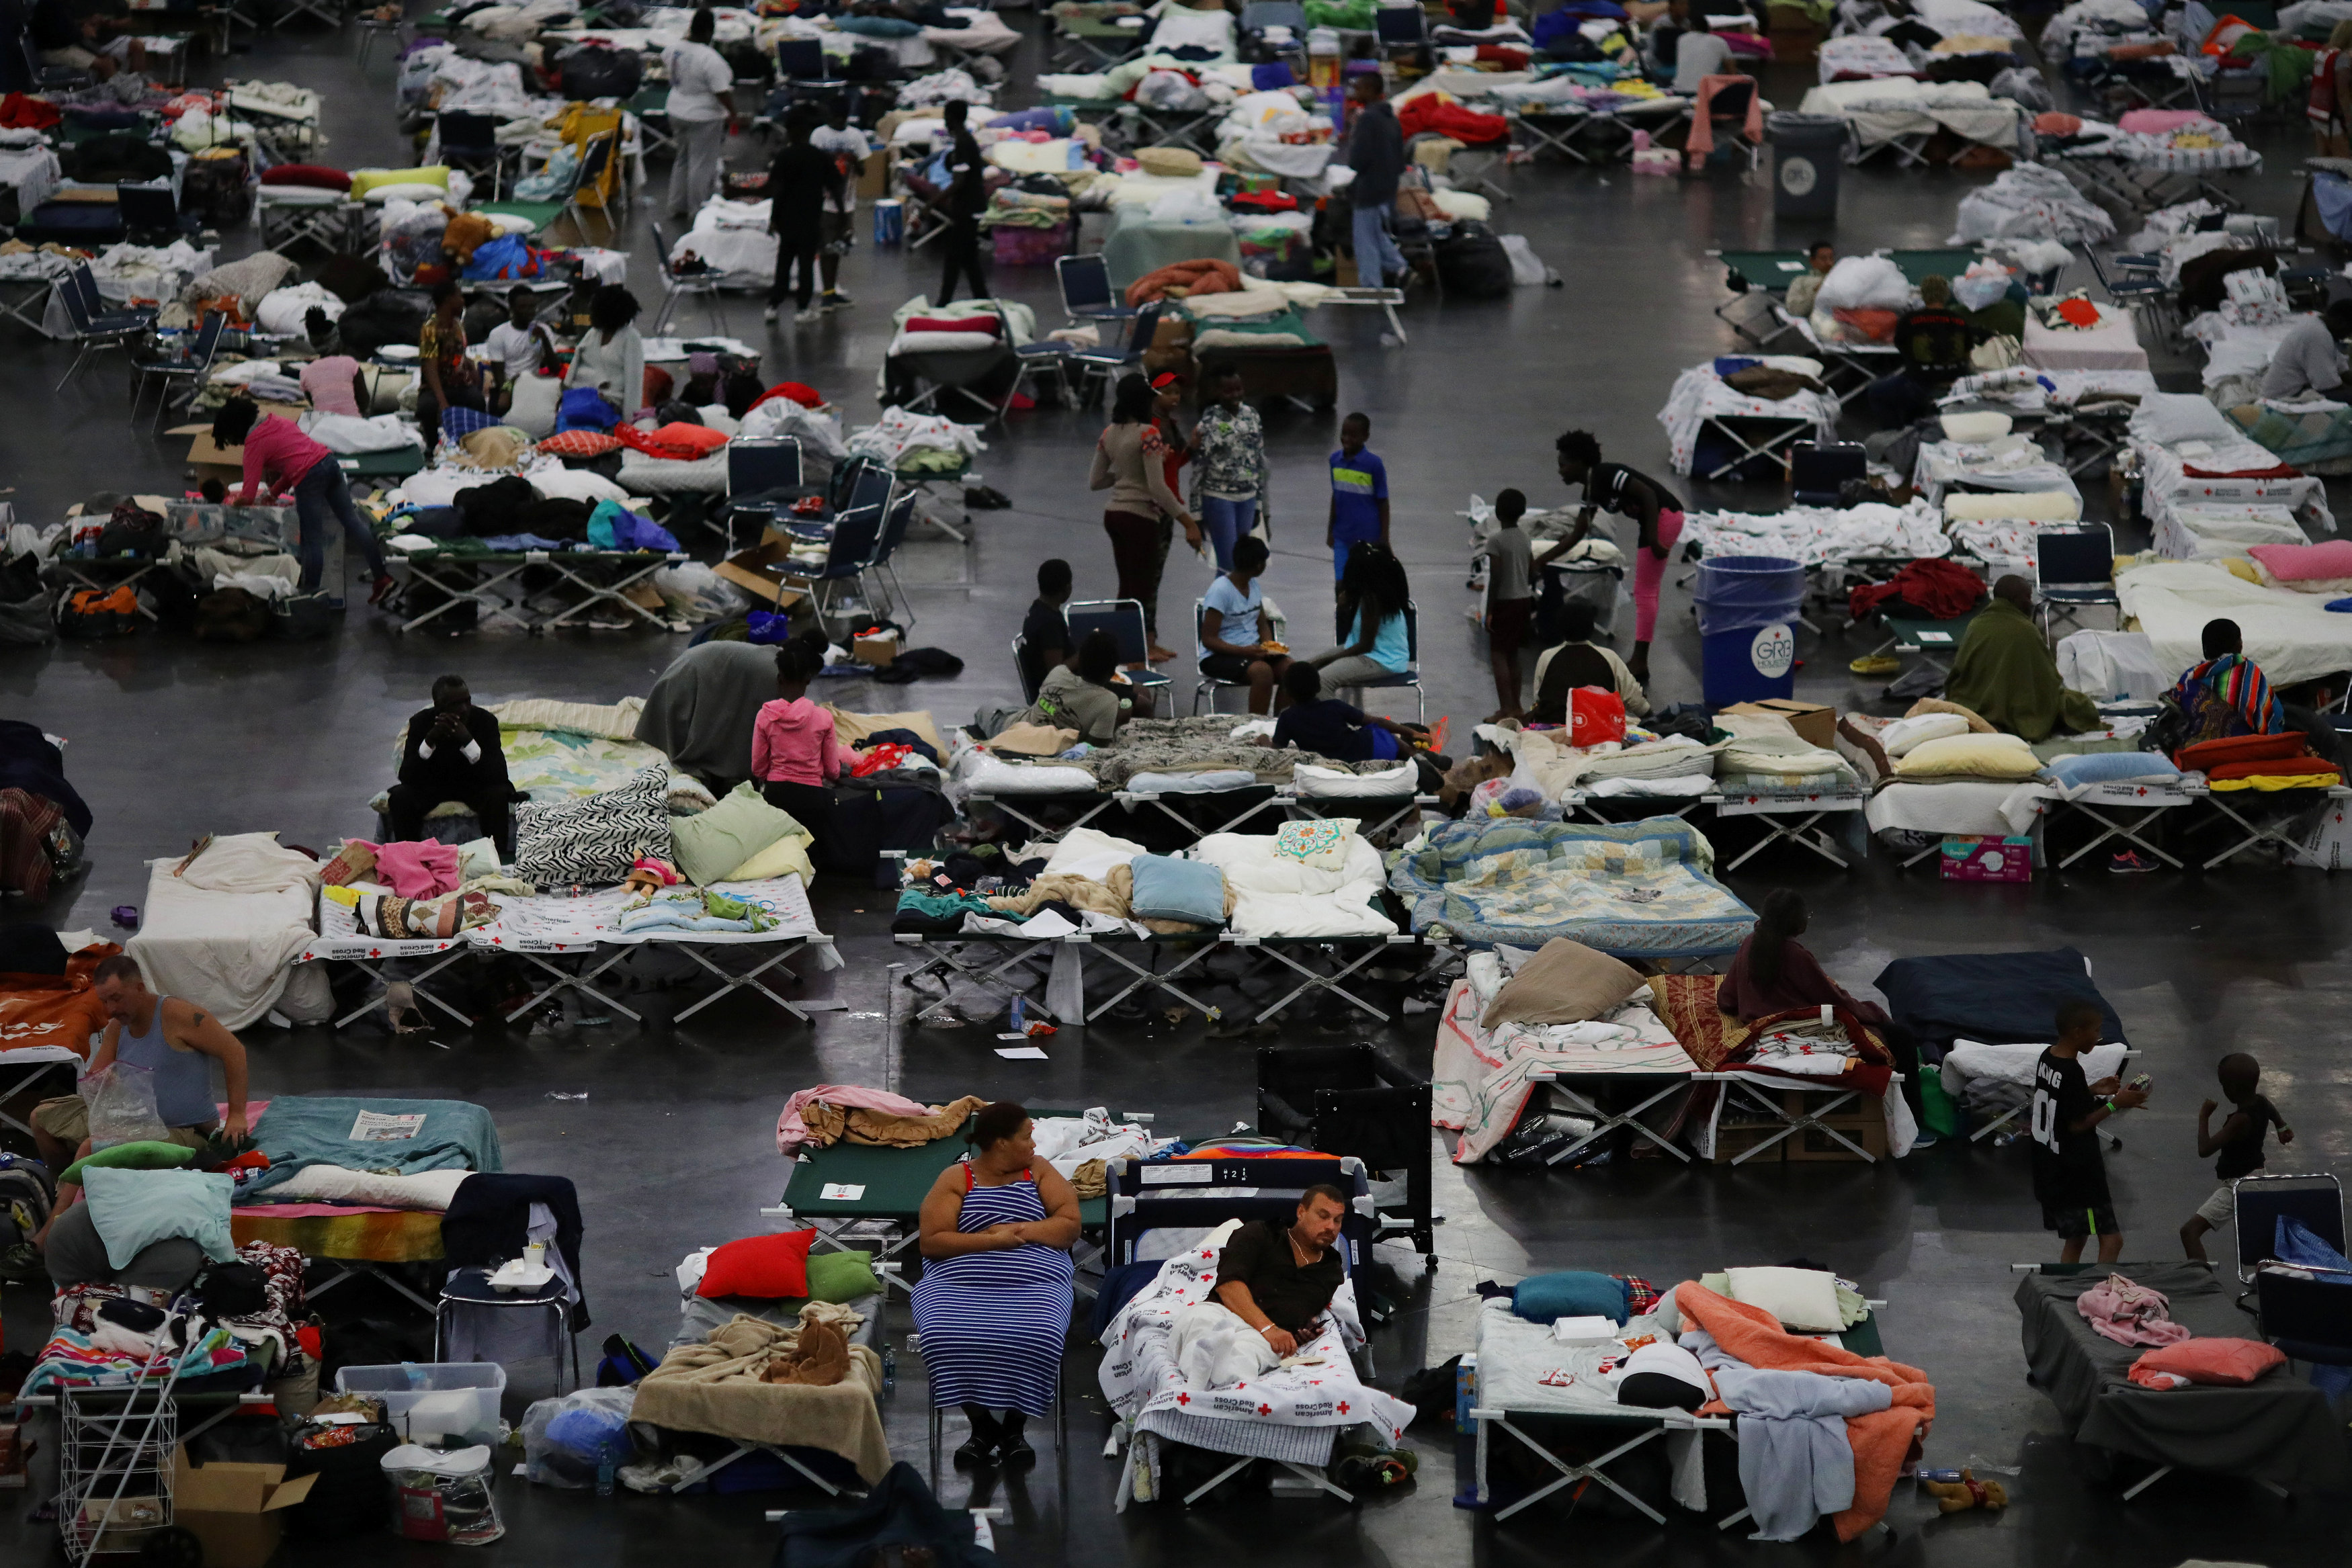 Evacuees affected by Tropical Storm Harvey take shelter at the George R. Brown Convention Center in downtown Houston, Texas, U.S.  August 31, 2017